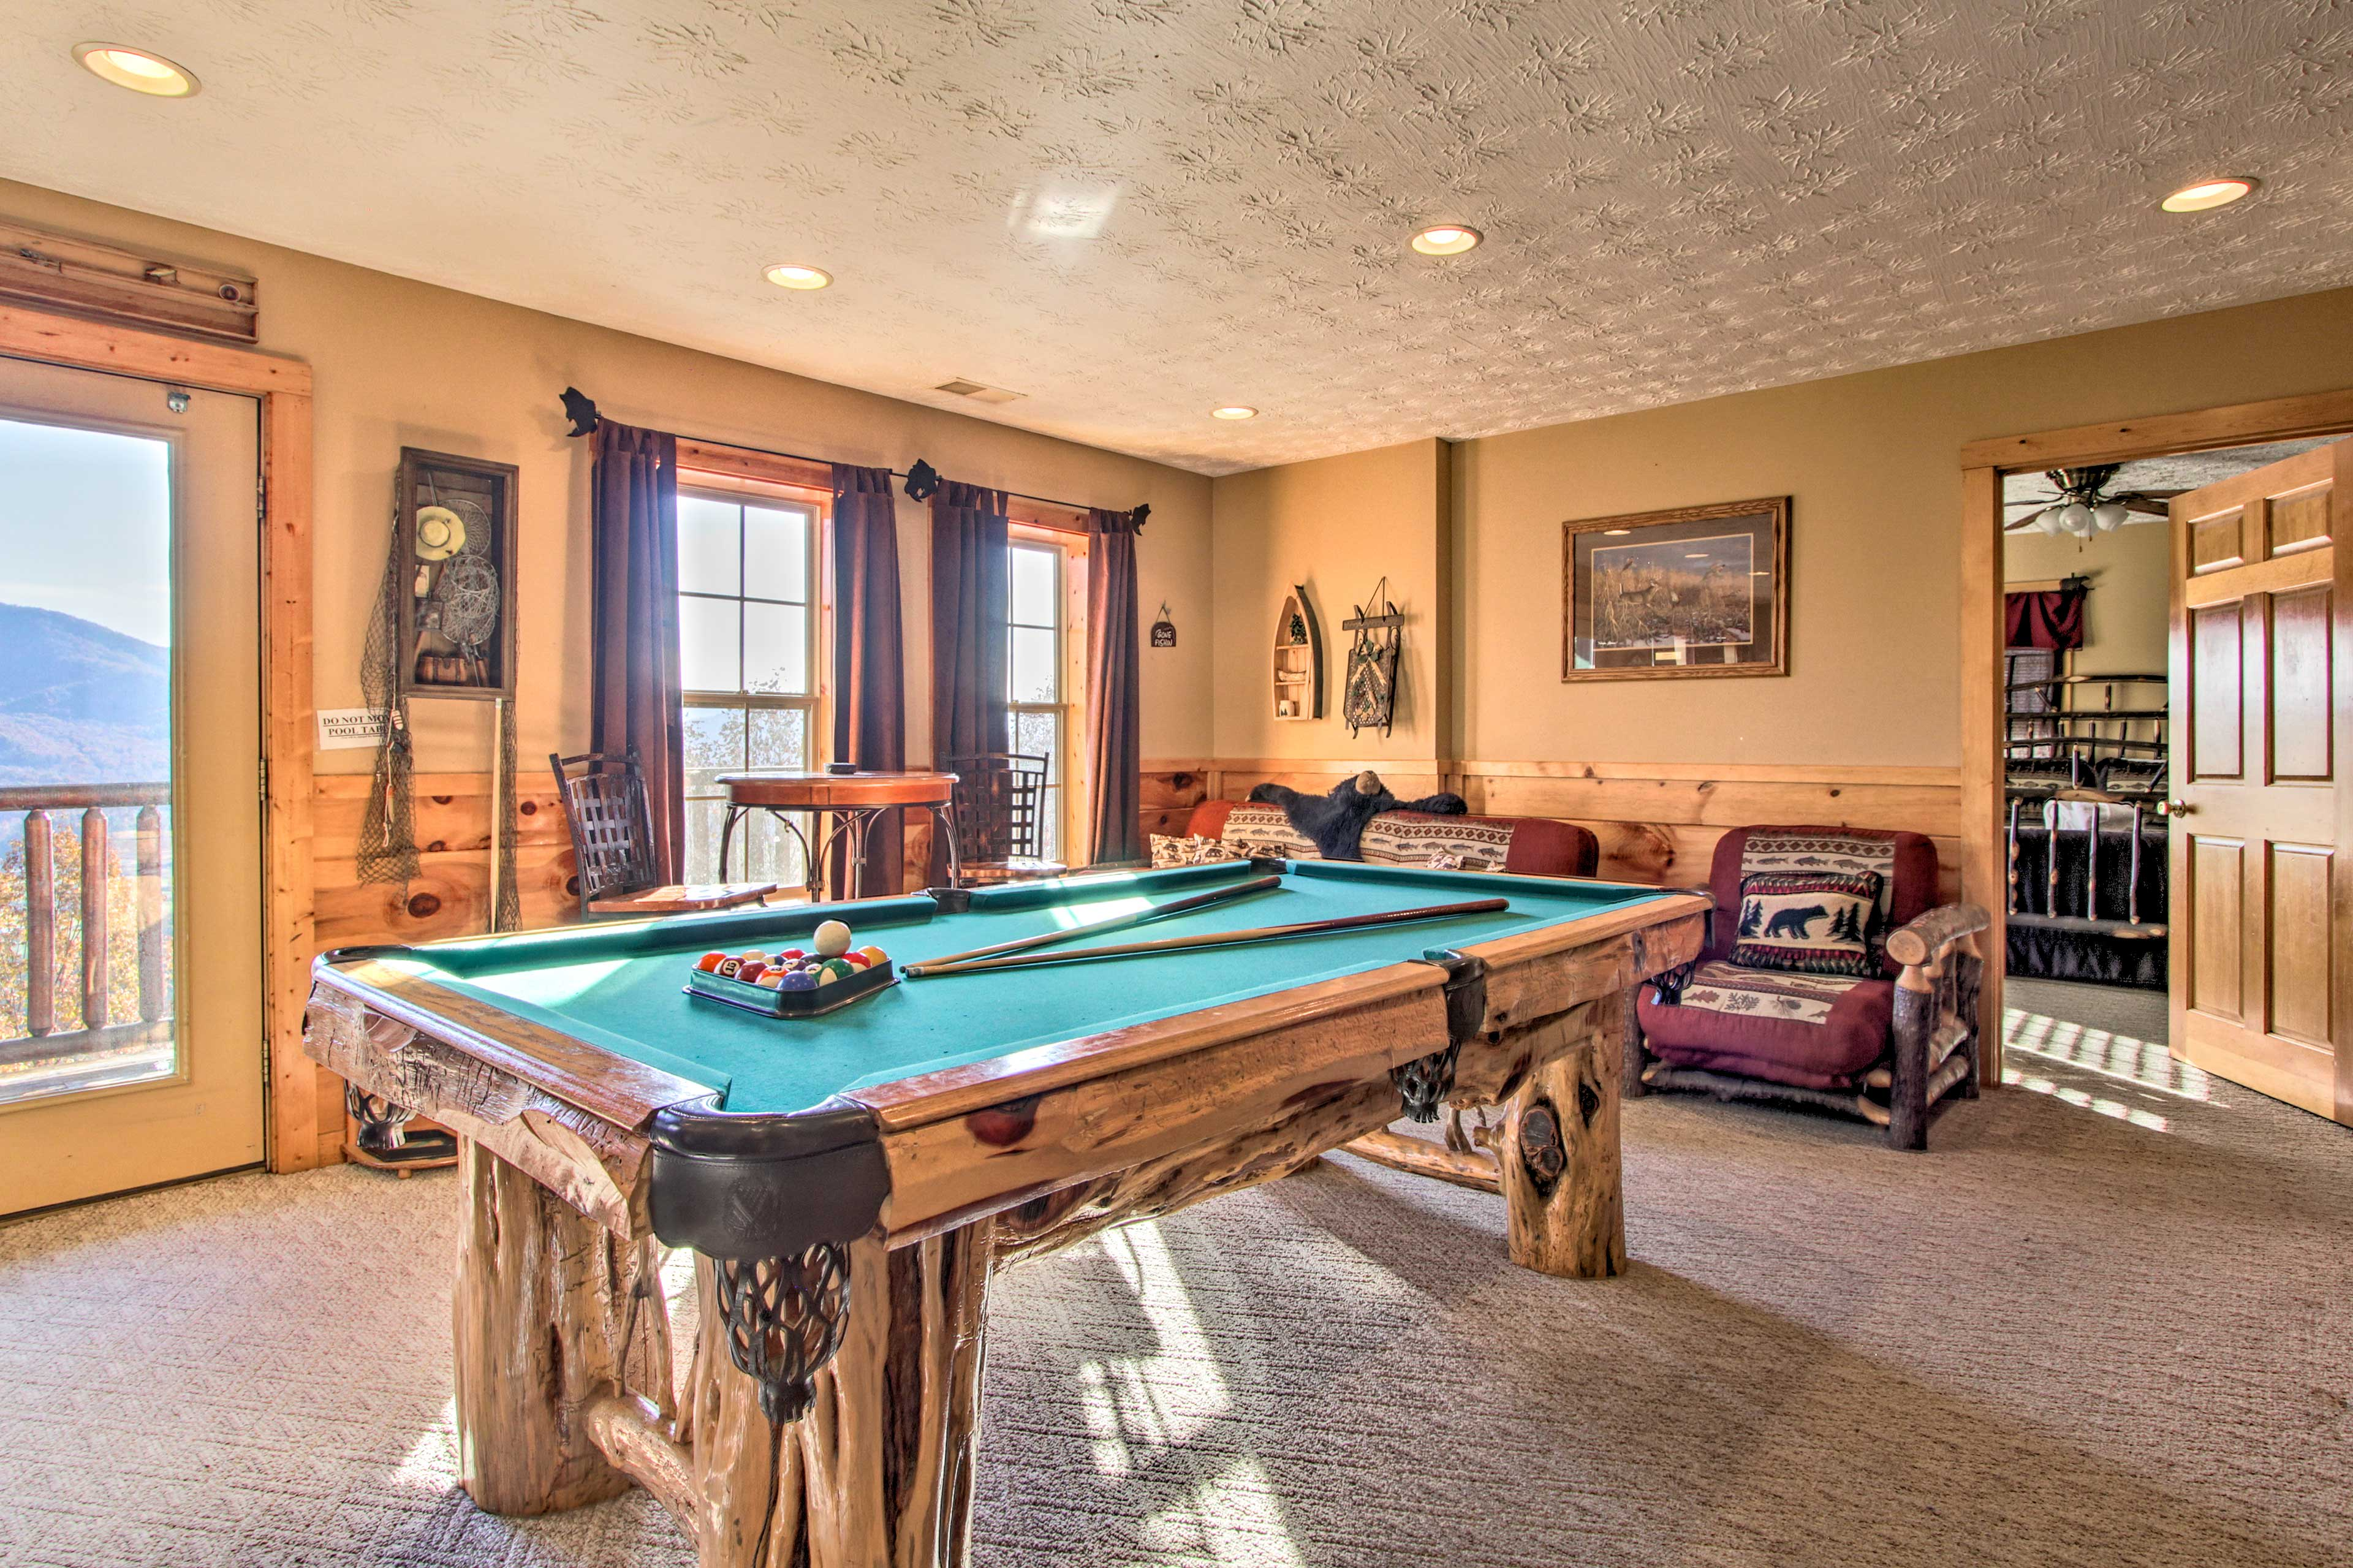 Reveal your inner pool shark in the downstairs media room's billiards table.